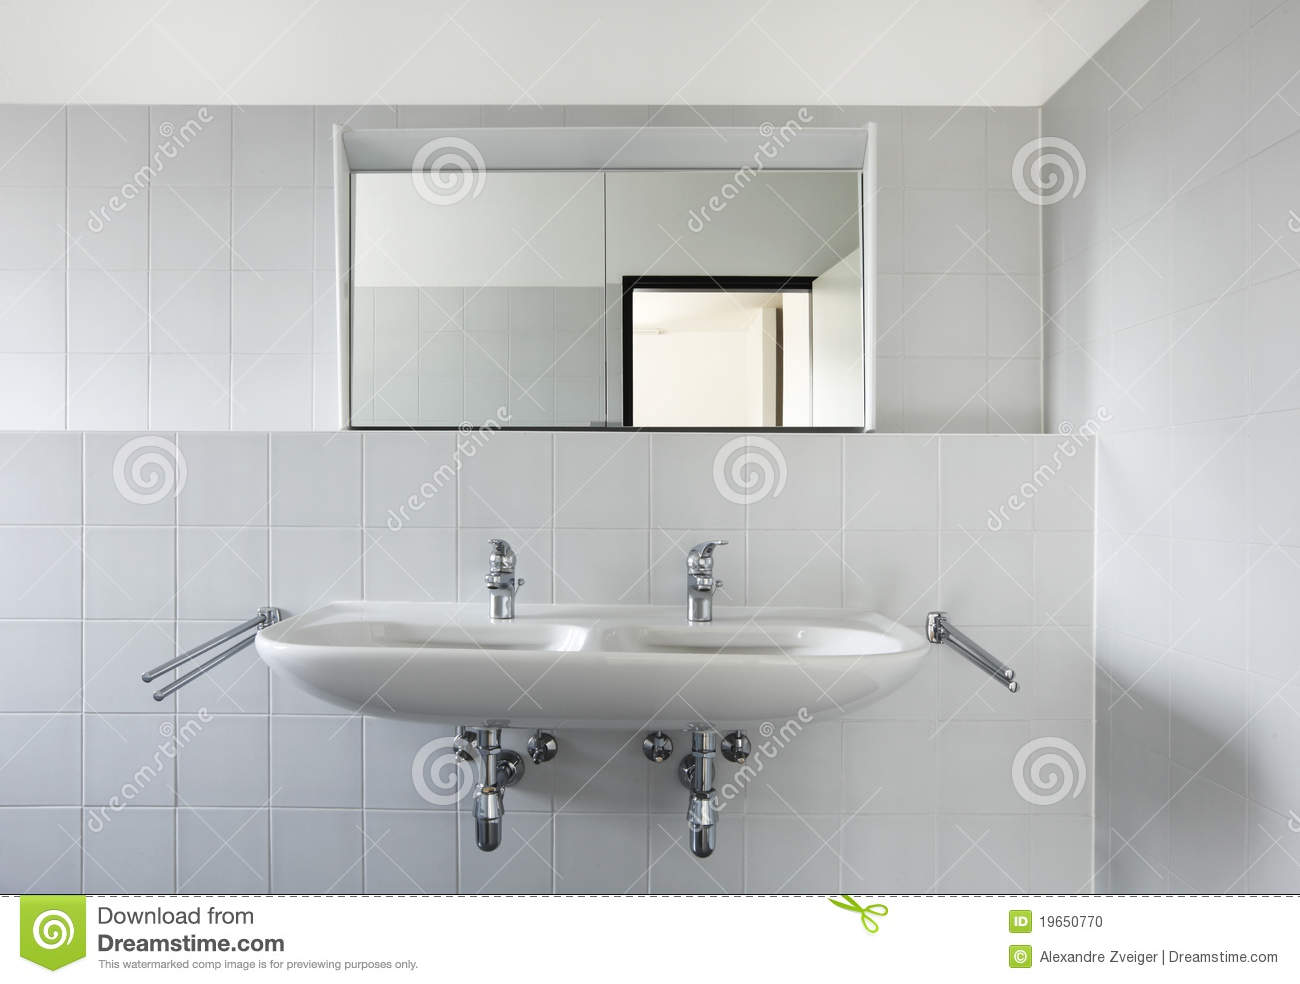 Bathroom sink and mirror - View Of Bathroom Sink And Mirror